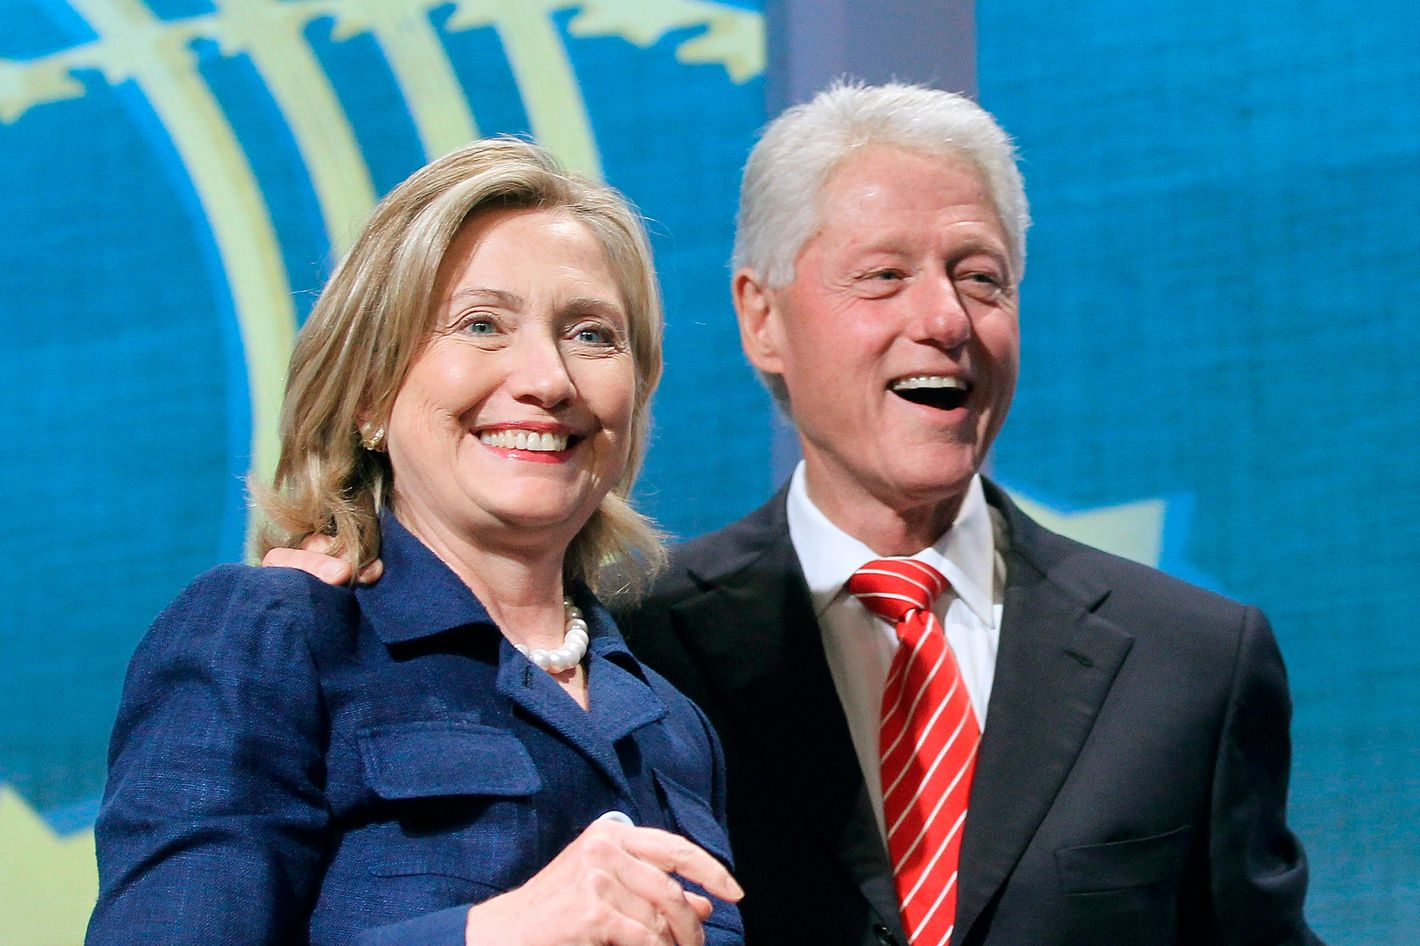 NEW YORK - SEPTEMBER 21:  Former U.S. President Bill Clinton (R) and U.S. Secretary of State Hillary Rodham Clinton smile during the annual Clinton Global Initiative (CGI) September 21, 2010 in New York City. The sixth annual meeting of the CGI gathers prominent individuals in politics, business, science, academics, religion and entertainment to discuss global issues such as climate change and the reconstruction of Haiti. The event, founded by Clinton after he left office, is held the same week as the General Assembly at the United Nations, when most world leaders are in New York City.  (Photo by Mario Tama/Getty Images)